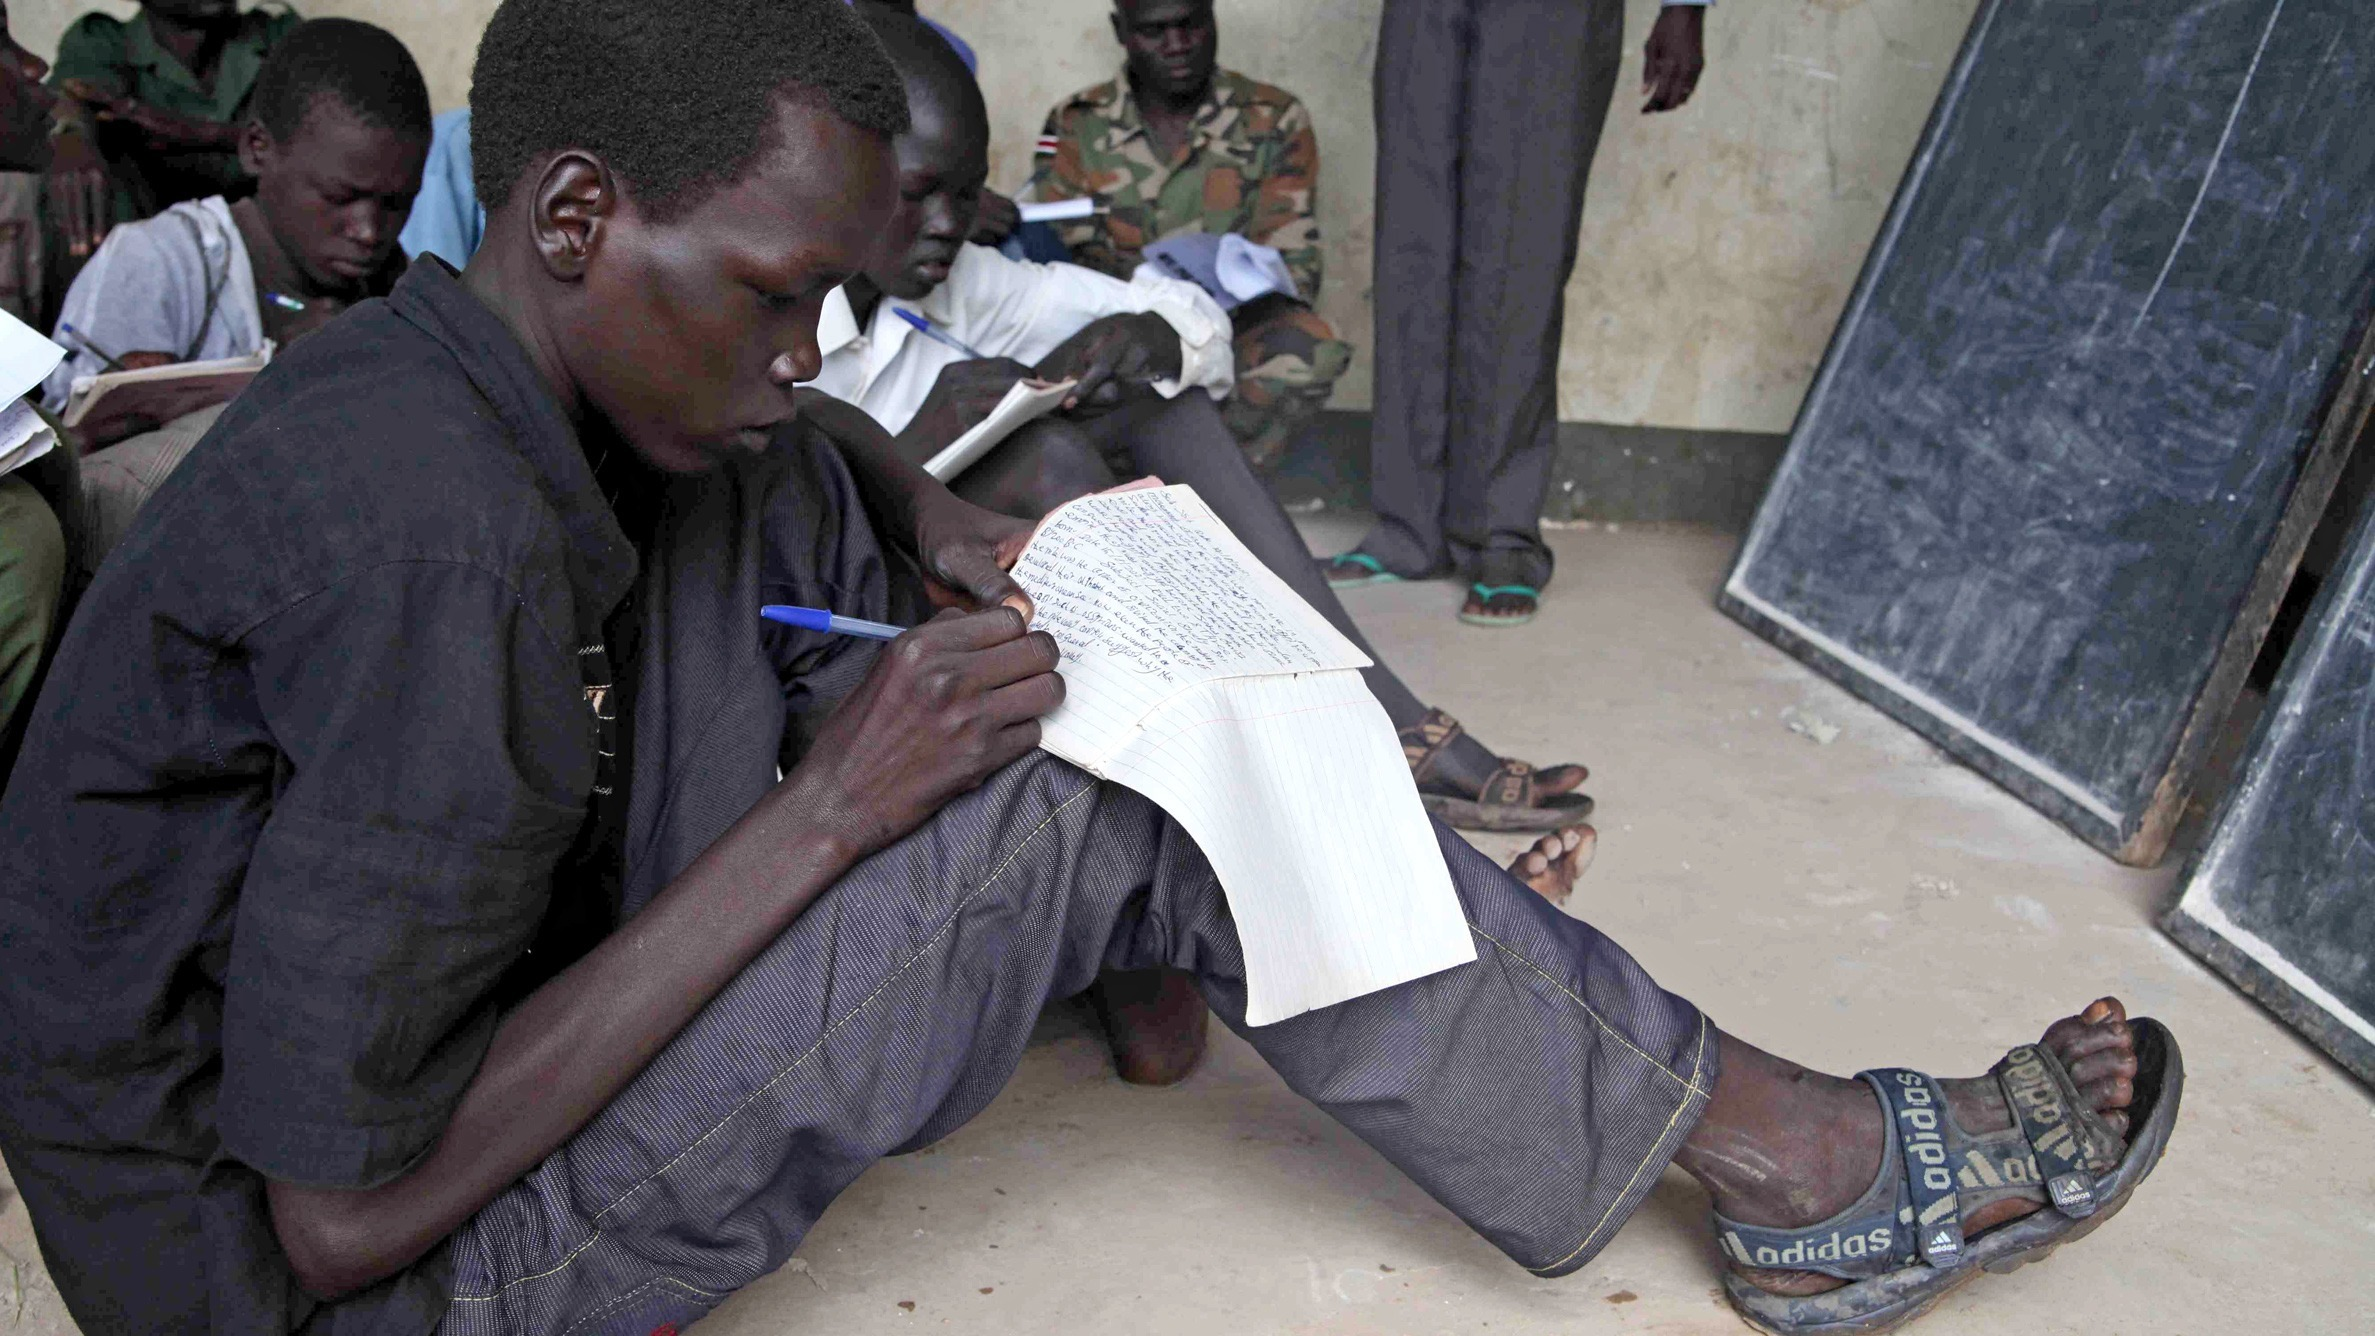 Boy attends English lesson at a military barracks in the Southern Sudanese town of Yei